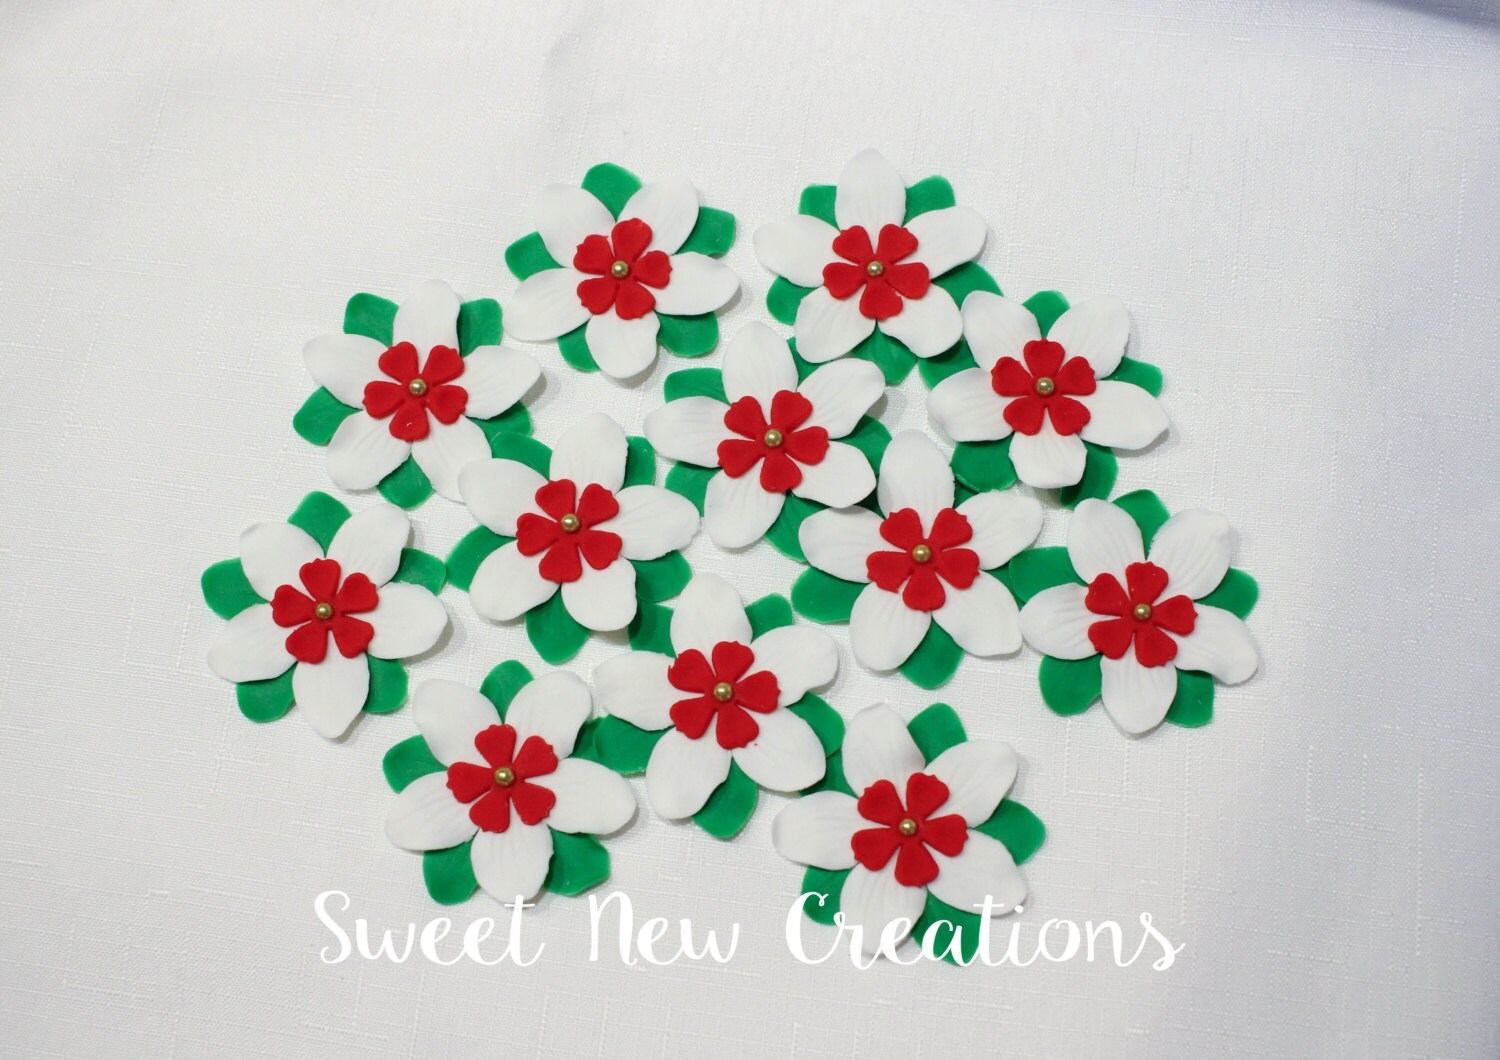 Mexican Fondant Flowers 25 Green White Red Edible Etsy